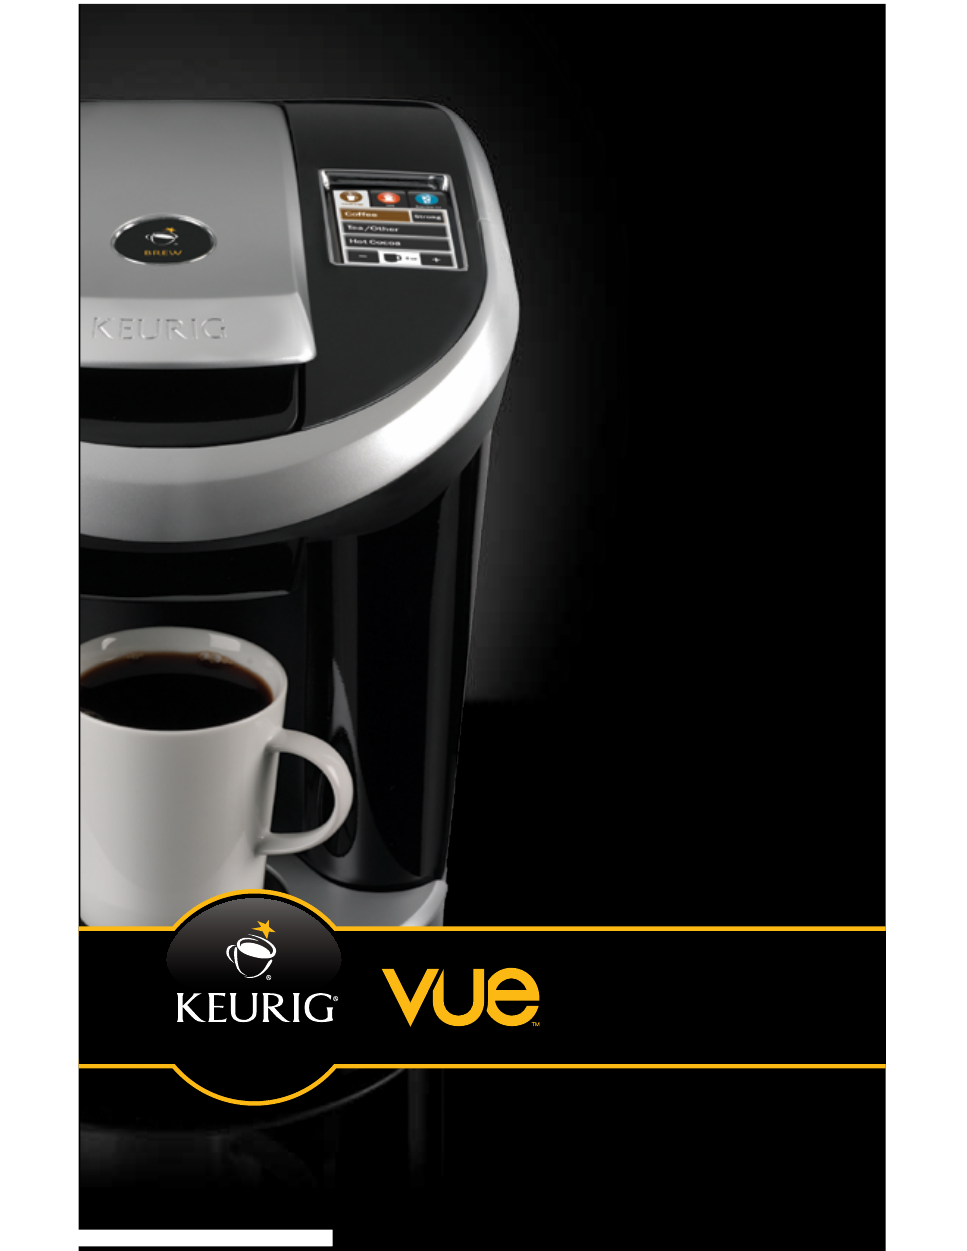 background image. Keurig® Vue™ Brewer